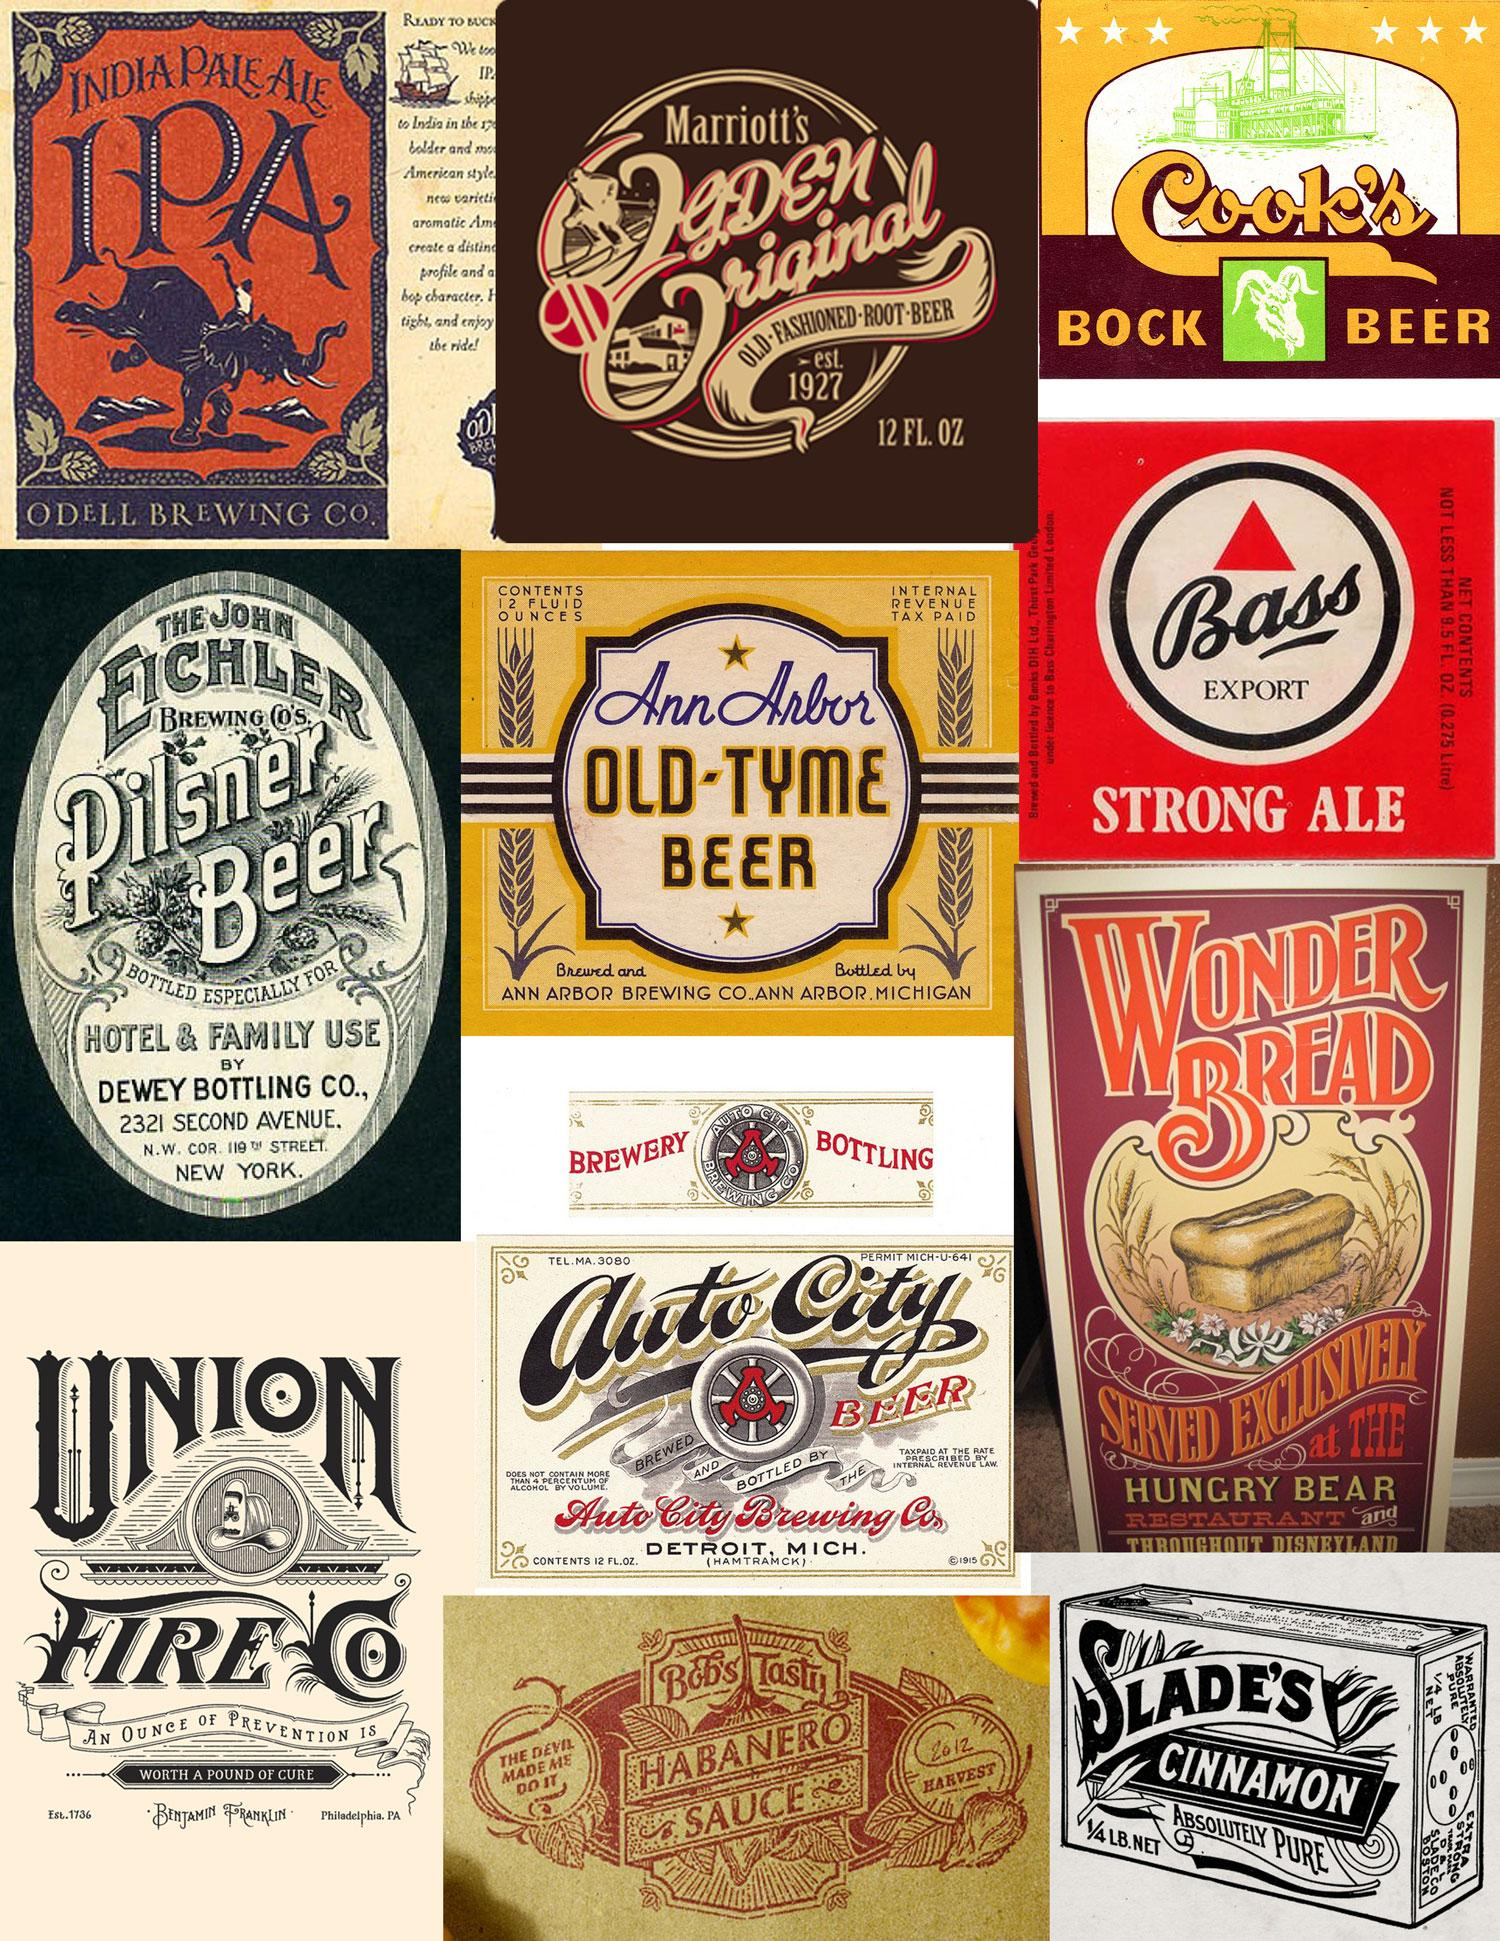 Pickswing Beer - image 1 - student project